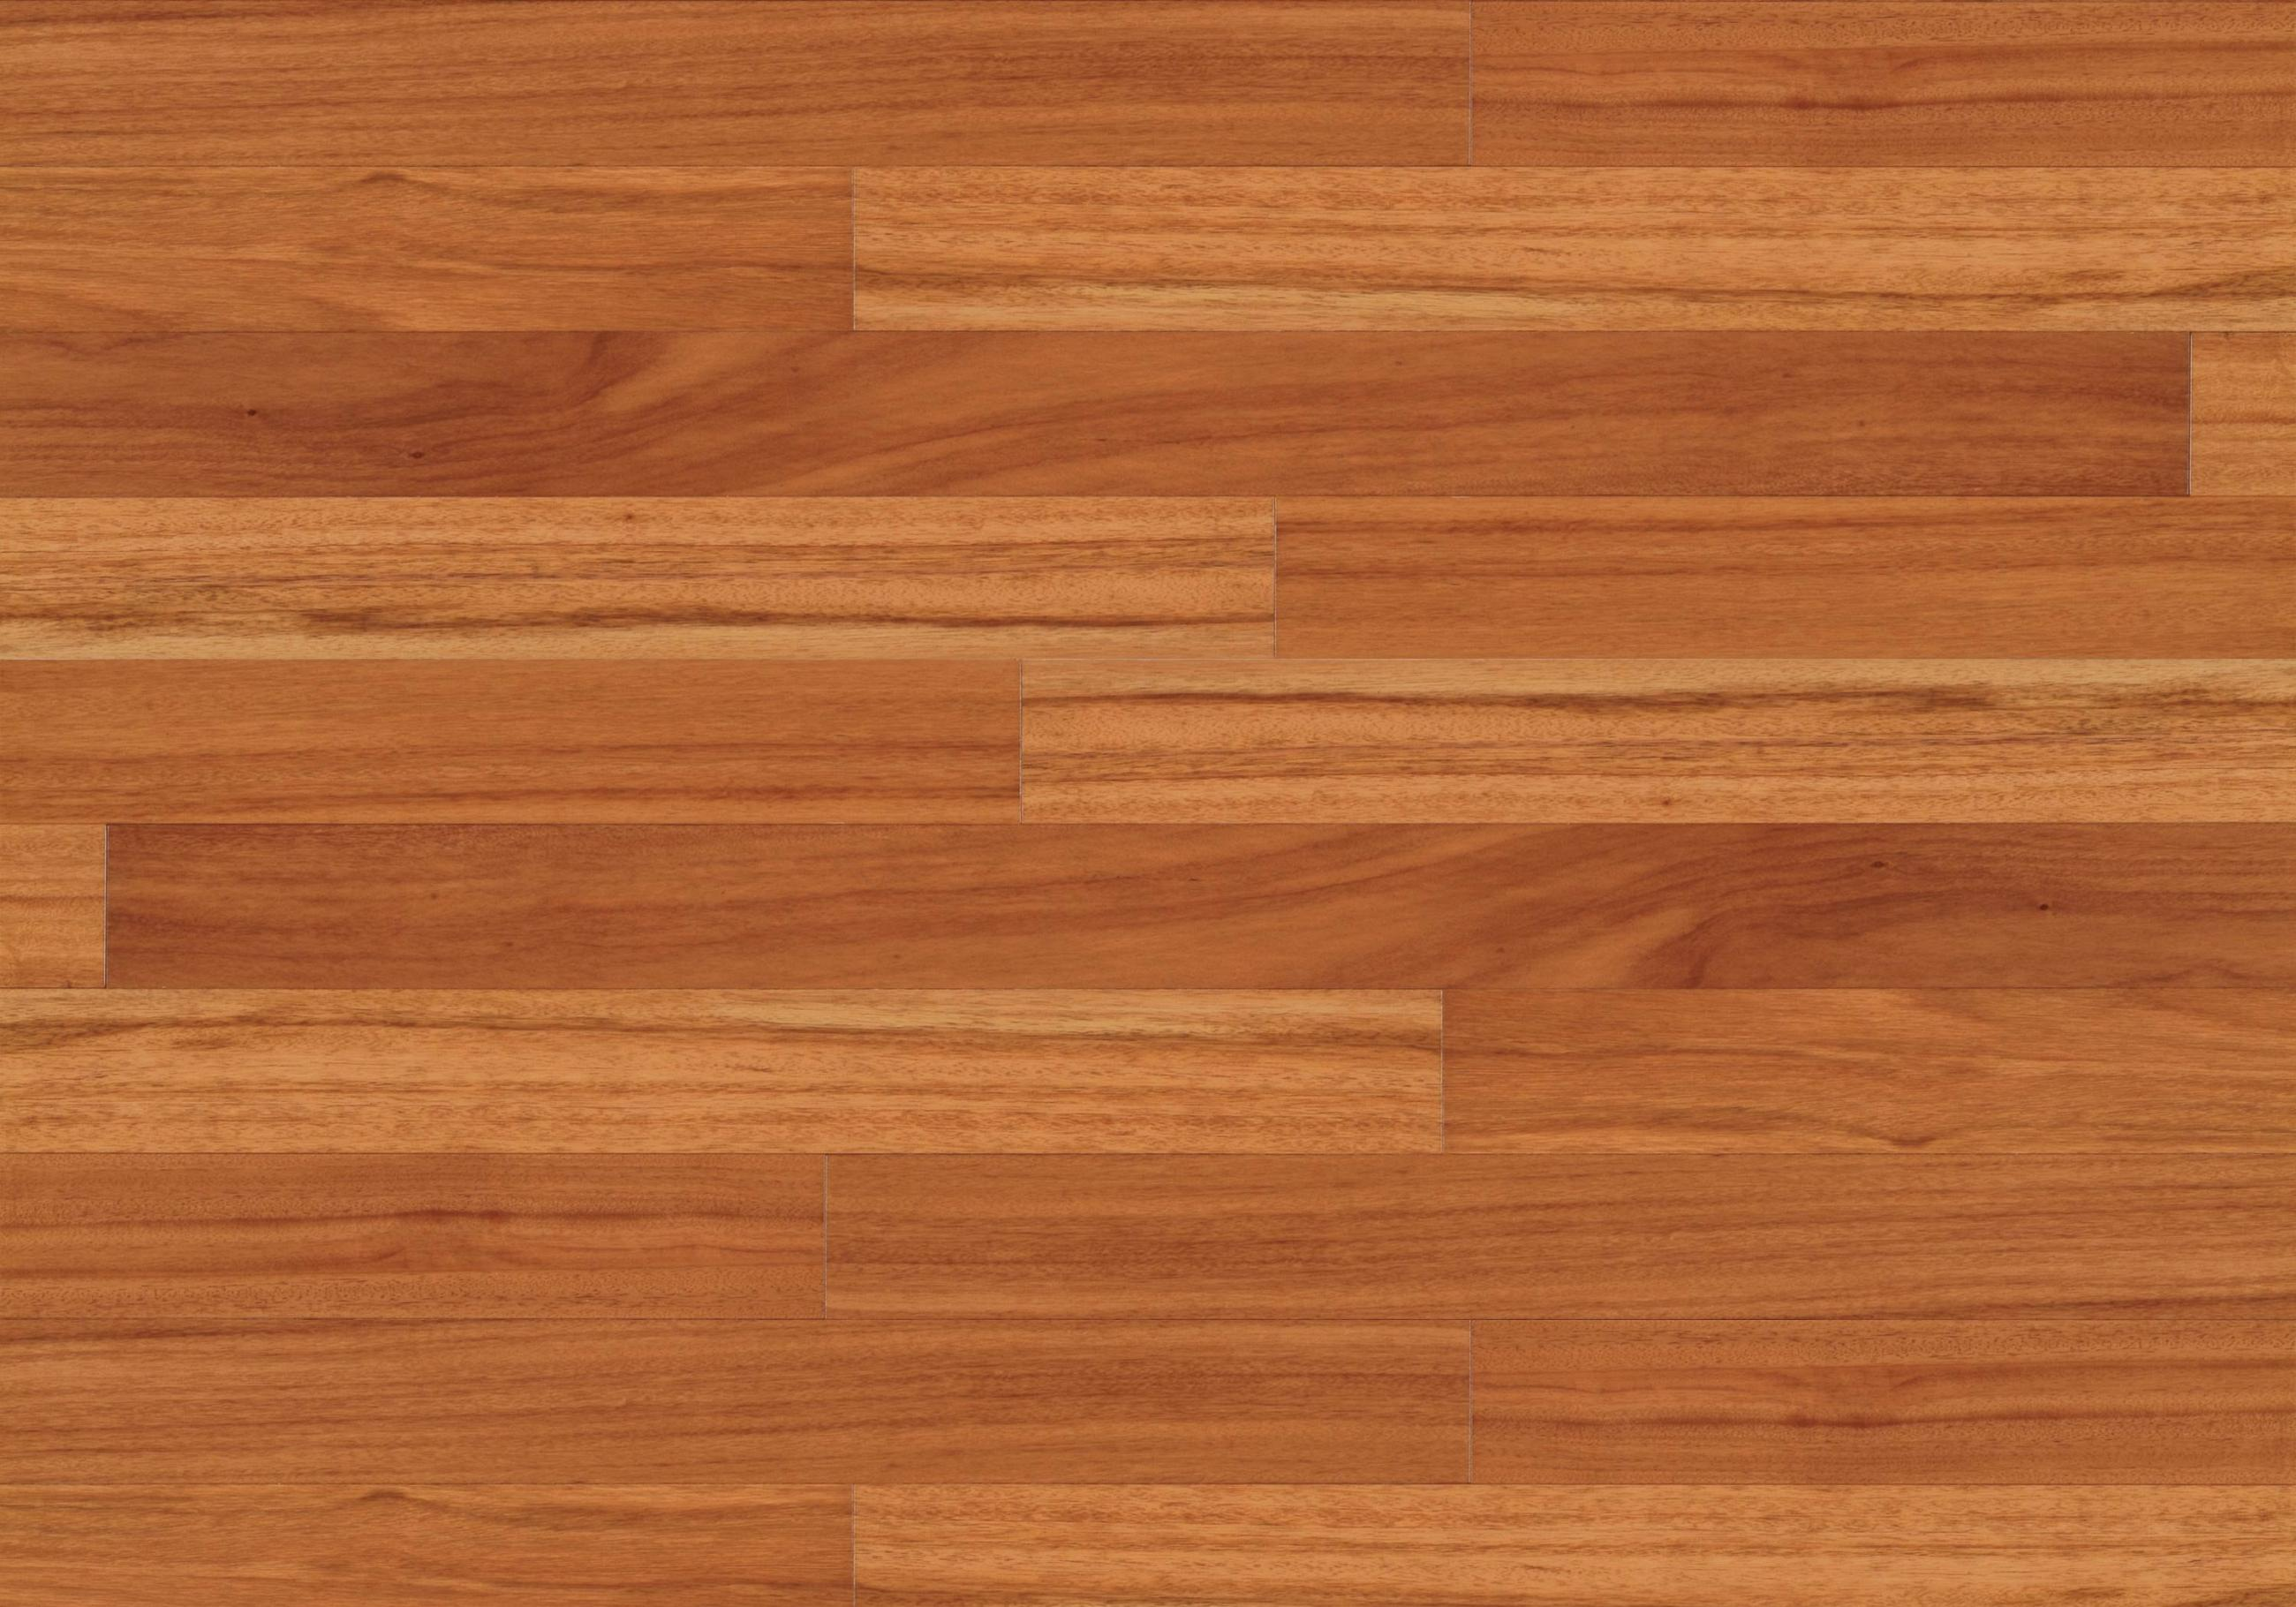 Wooden Tiles Engineered Hardwood Flooring Specialty Store In Anaheim Ca